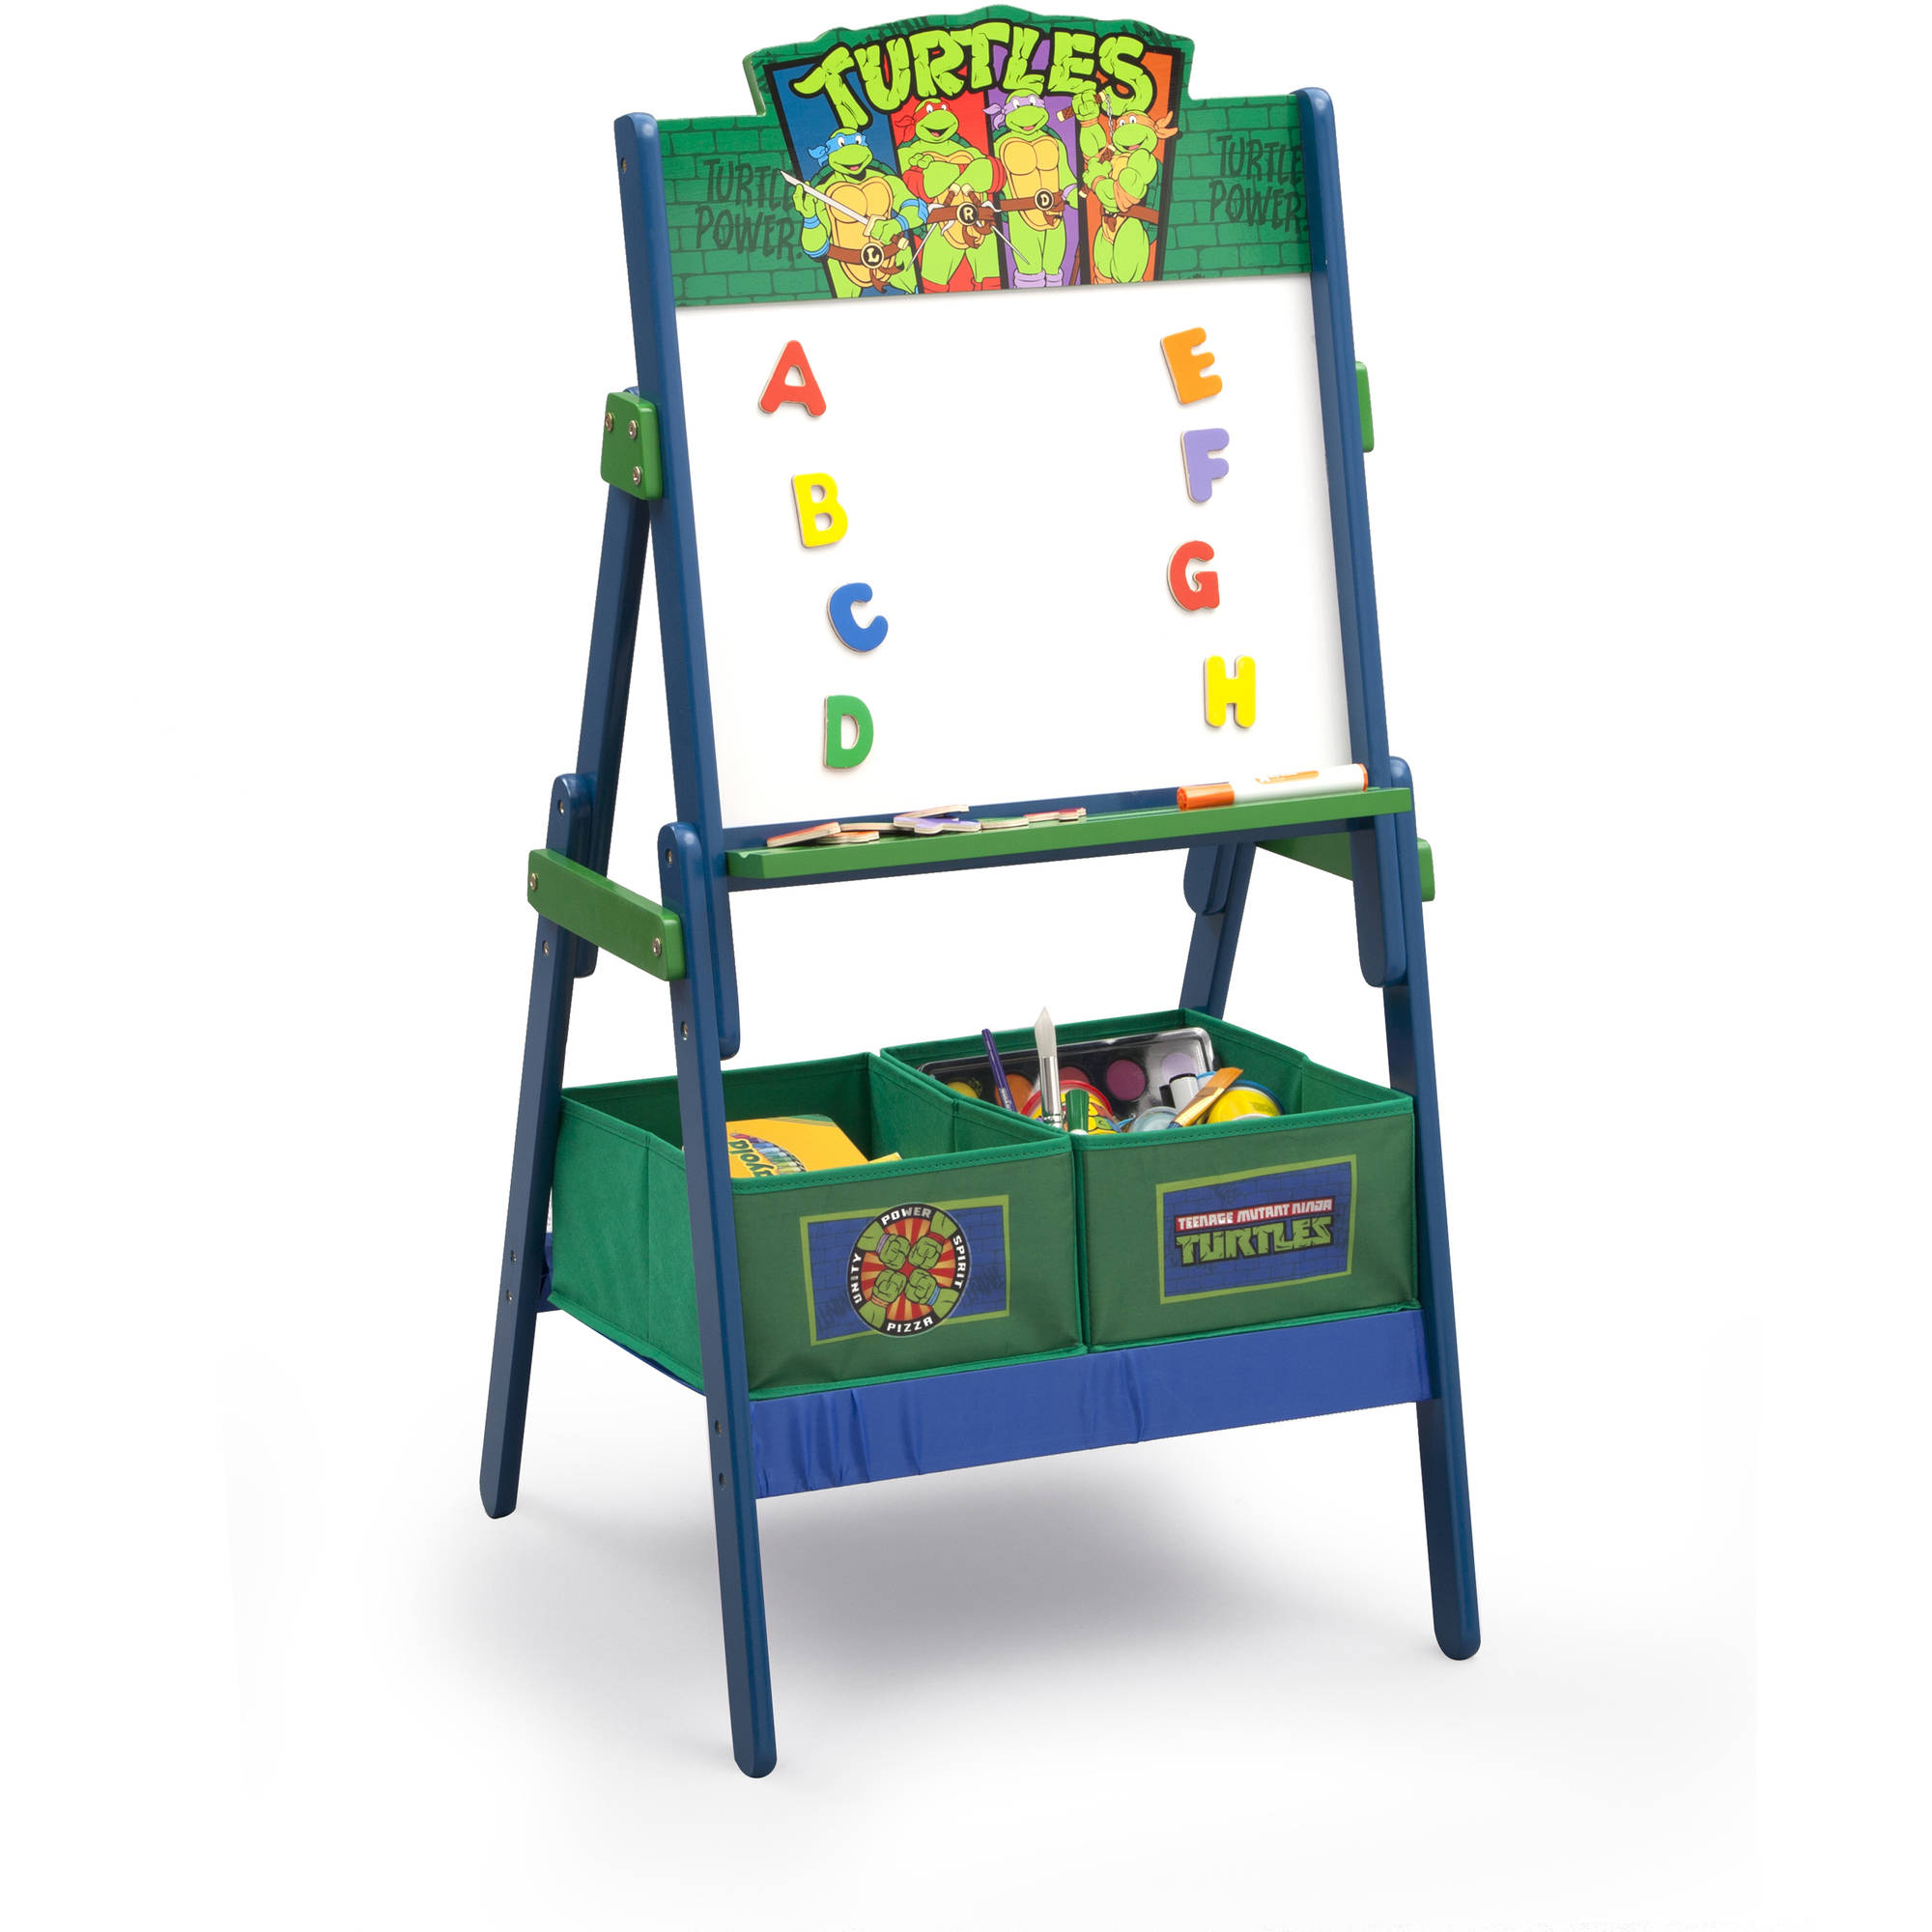 Teenage Mutant Ninja Turtles Activity Easel with Storage by Delta Children